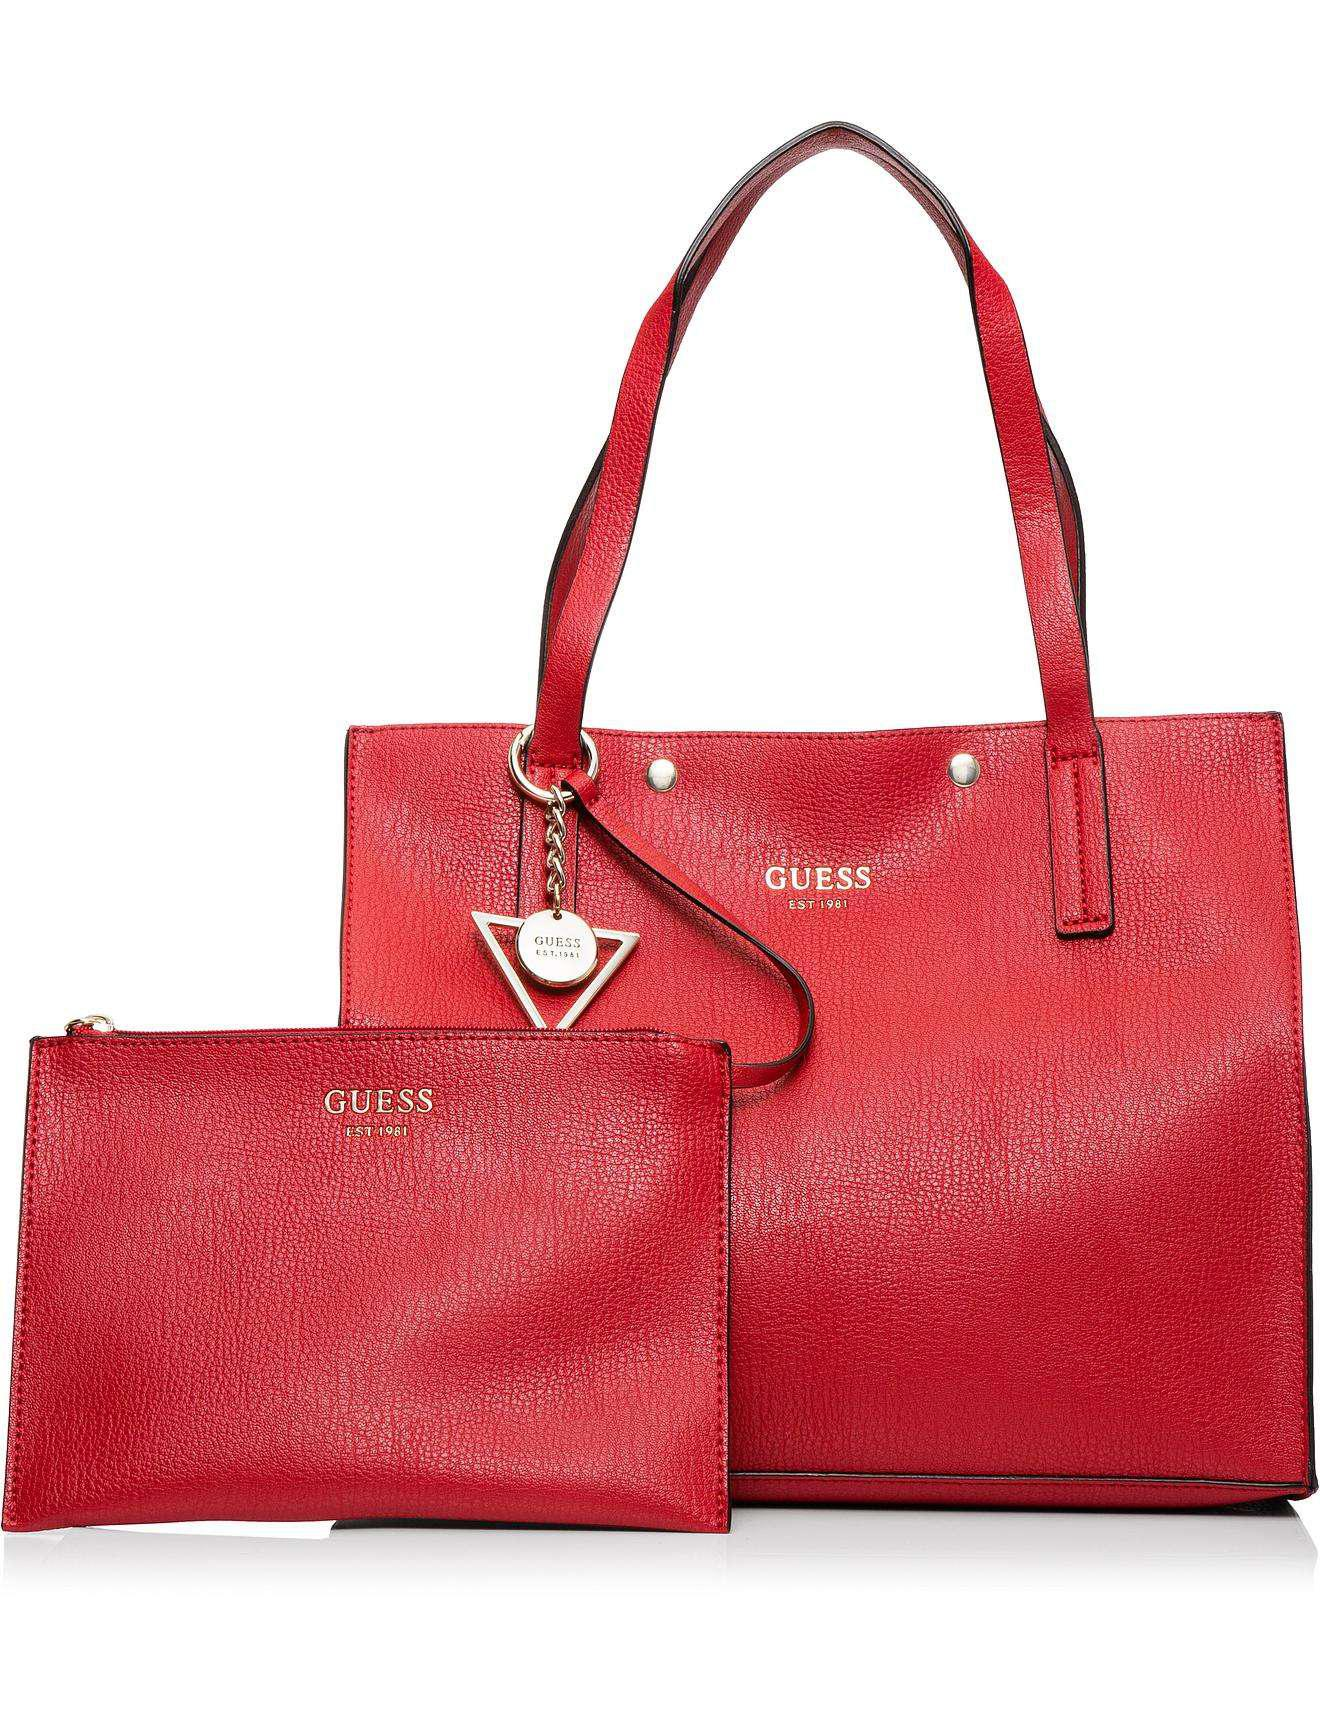 824546f528d Guess Kinley Carry All in Red - Lyst